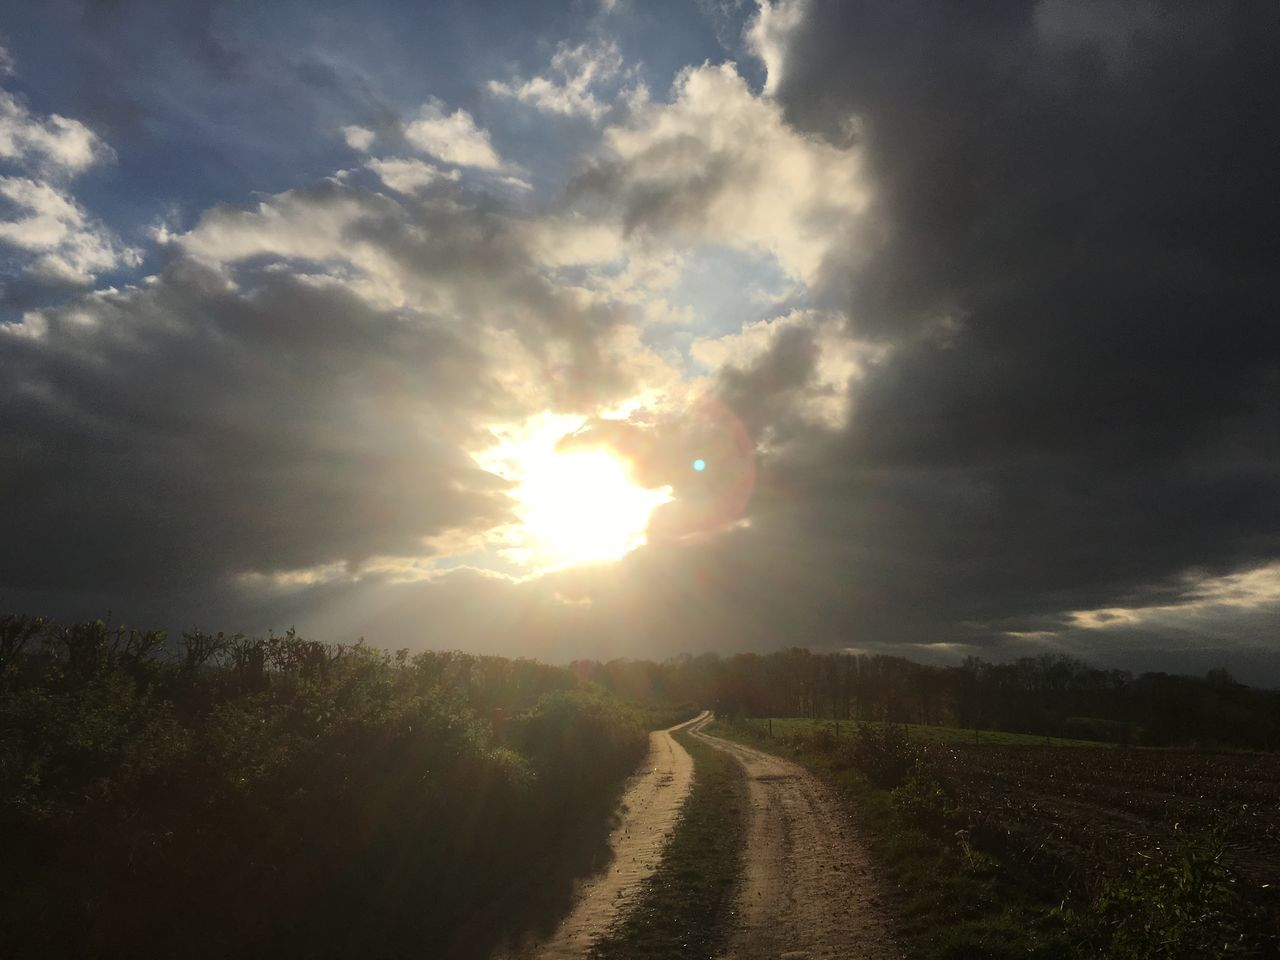 agriculture, nature, tranquil scene, cloud - sky, landscape, scenics, sun, field, tranquility, sunbeam, sky, sunset, beauty in nature, rural scene, no people, the way forward, outdoors, sunlight, growth, road, storm cloud, tree, day